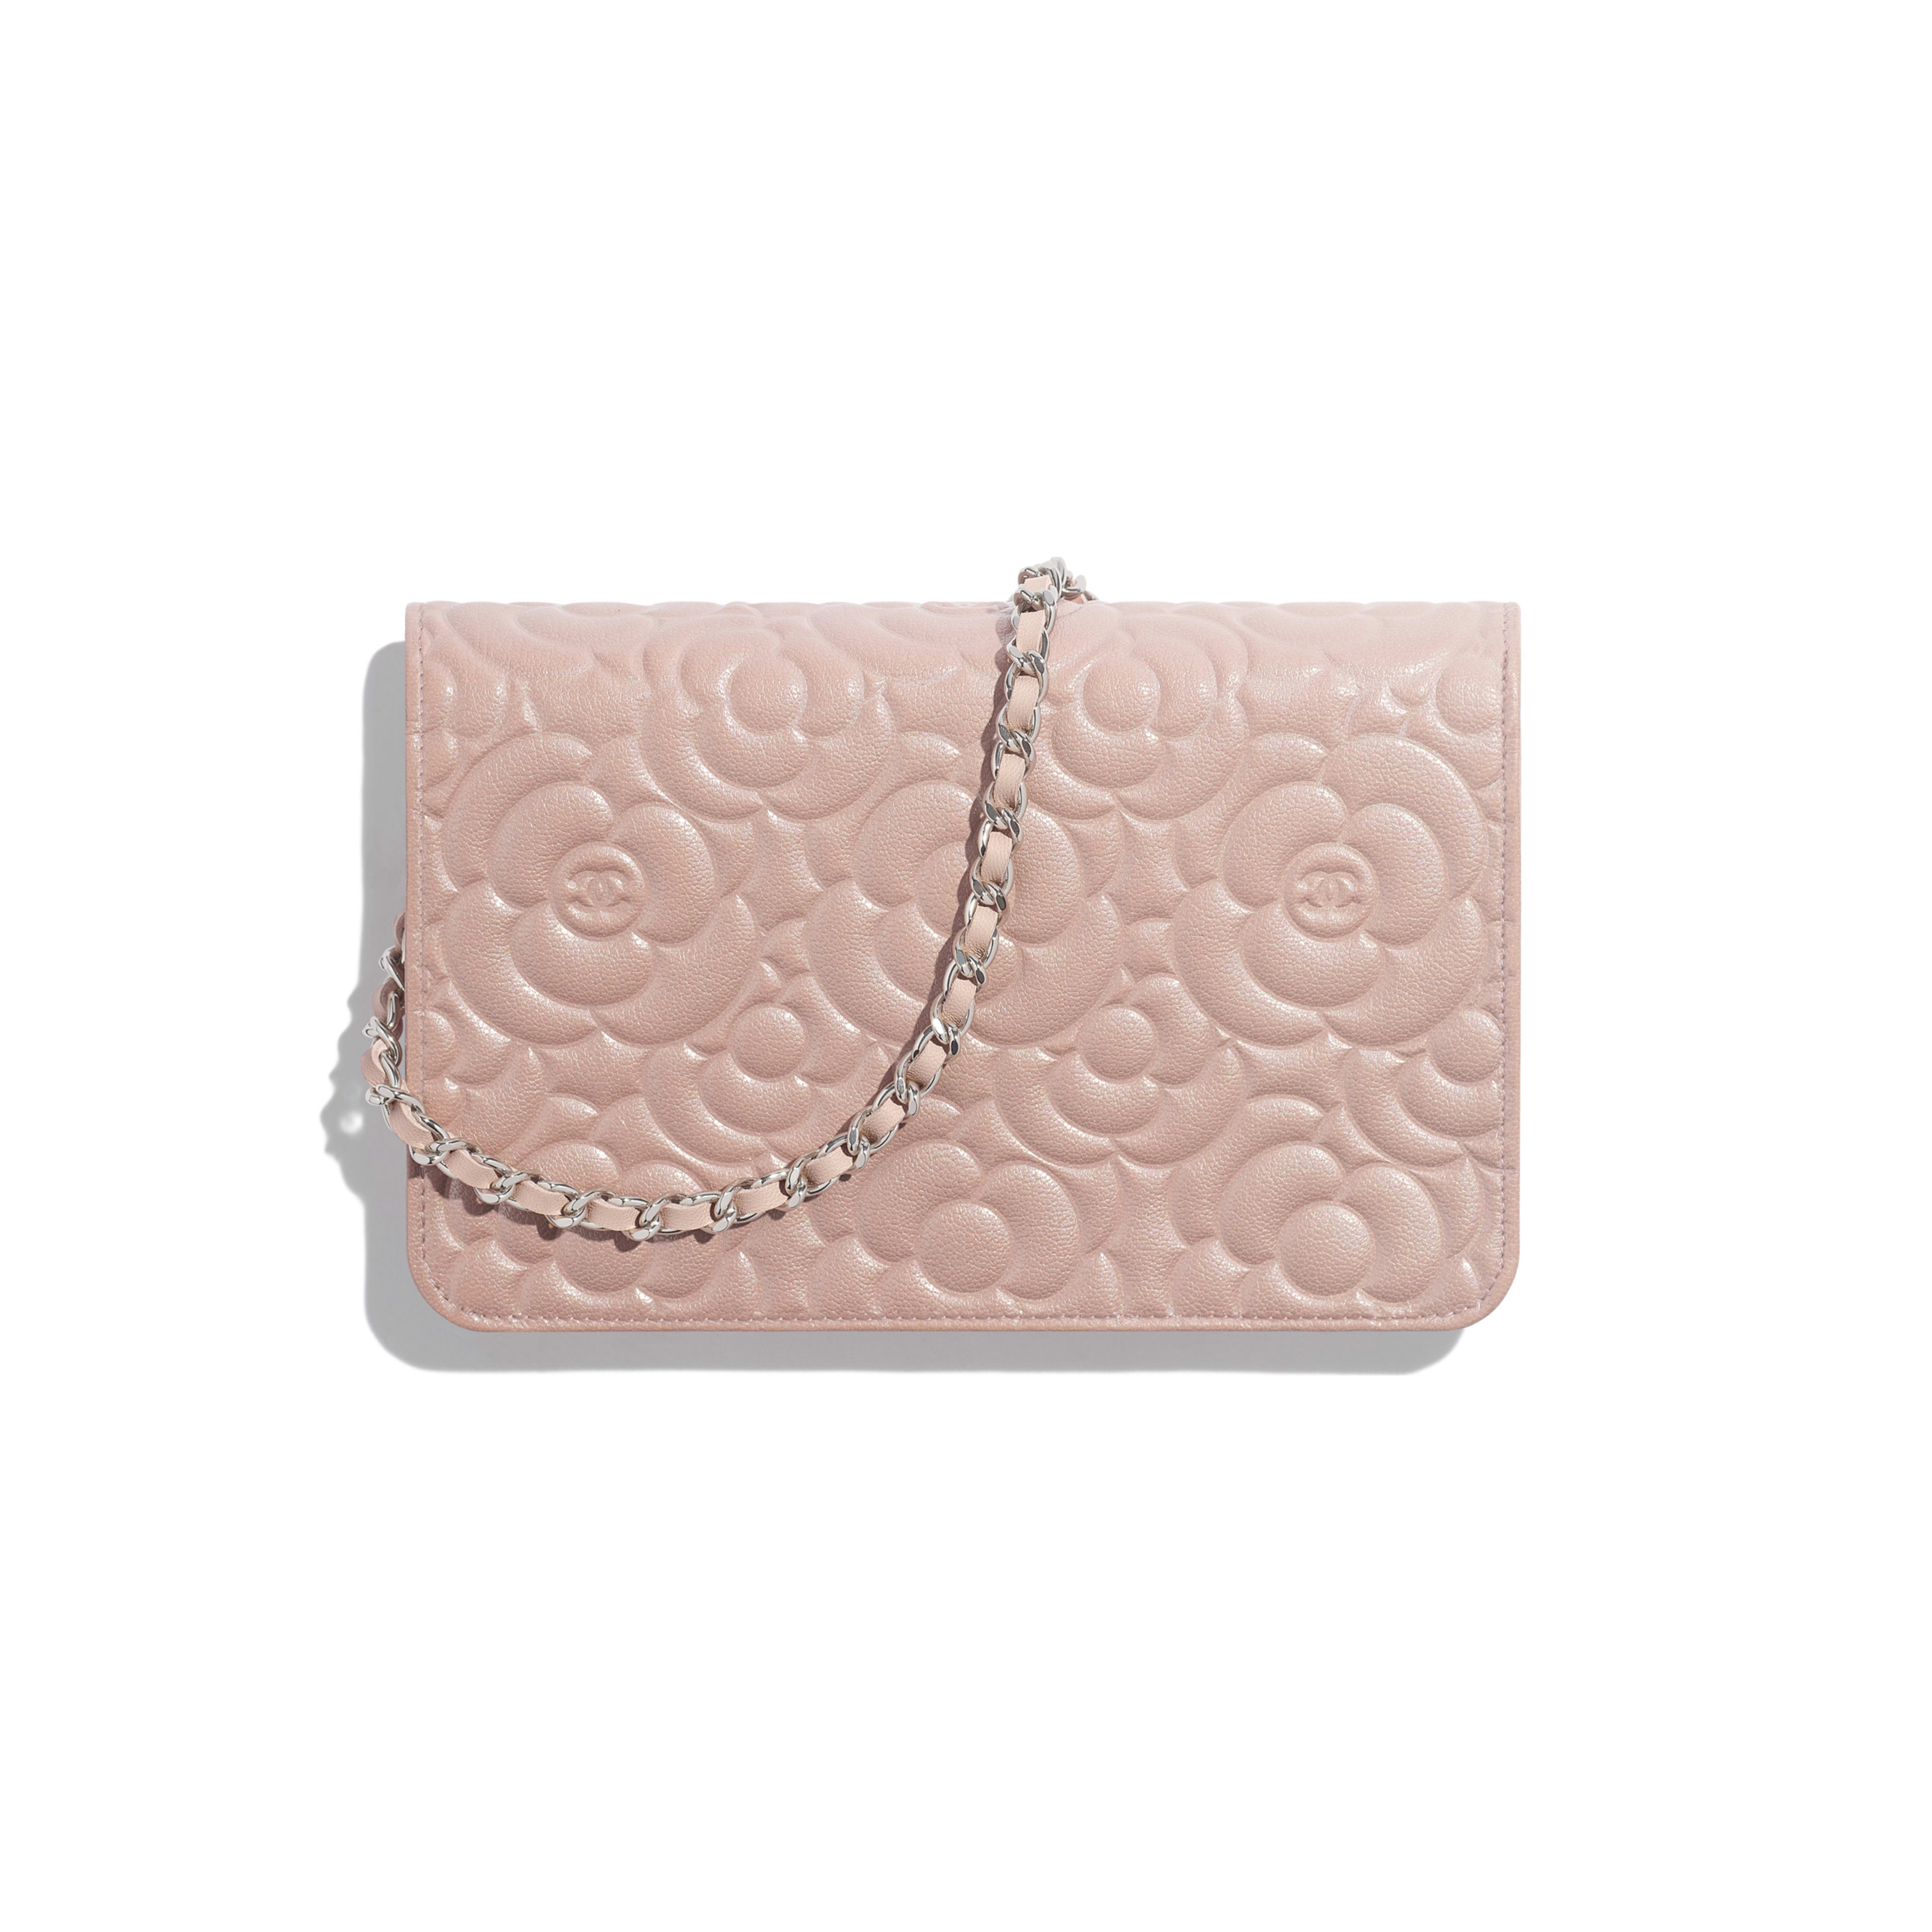 Wallet on Chain - Light Pink - Satin Finish Goatskin & Silver-Tone Metal - Alternative view - see full sized version